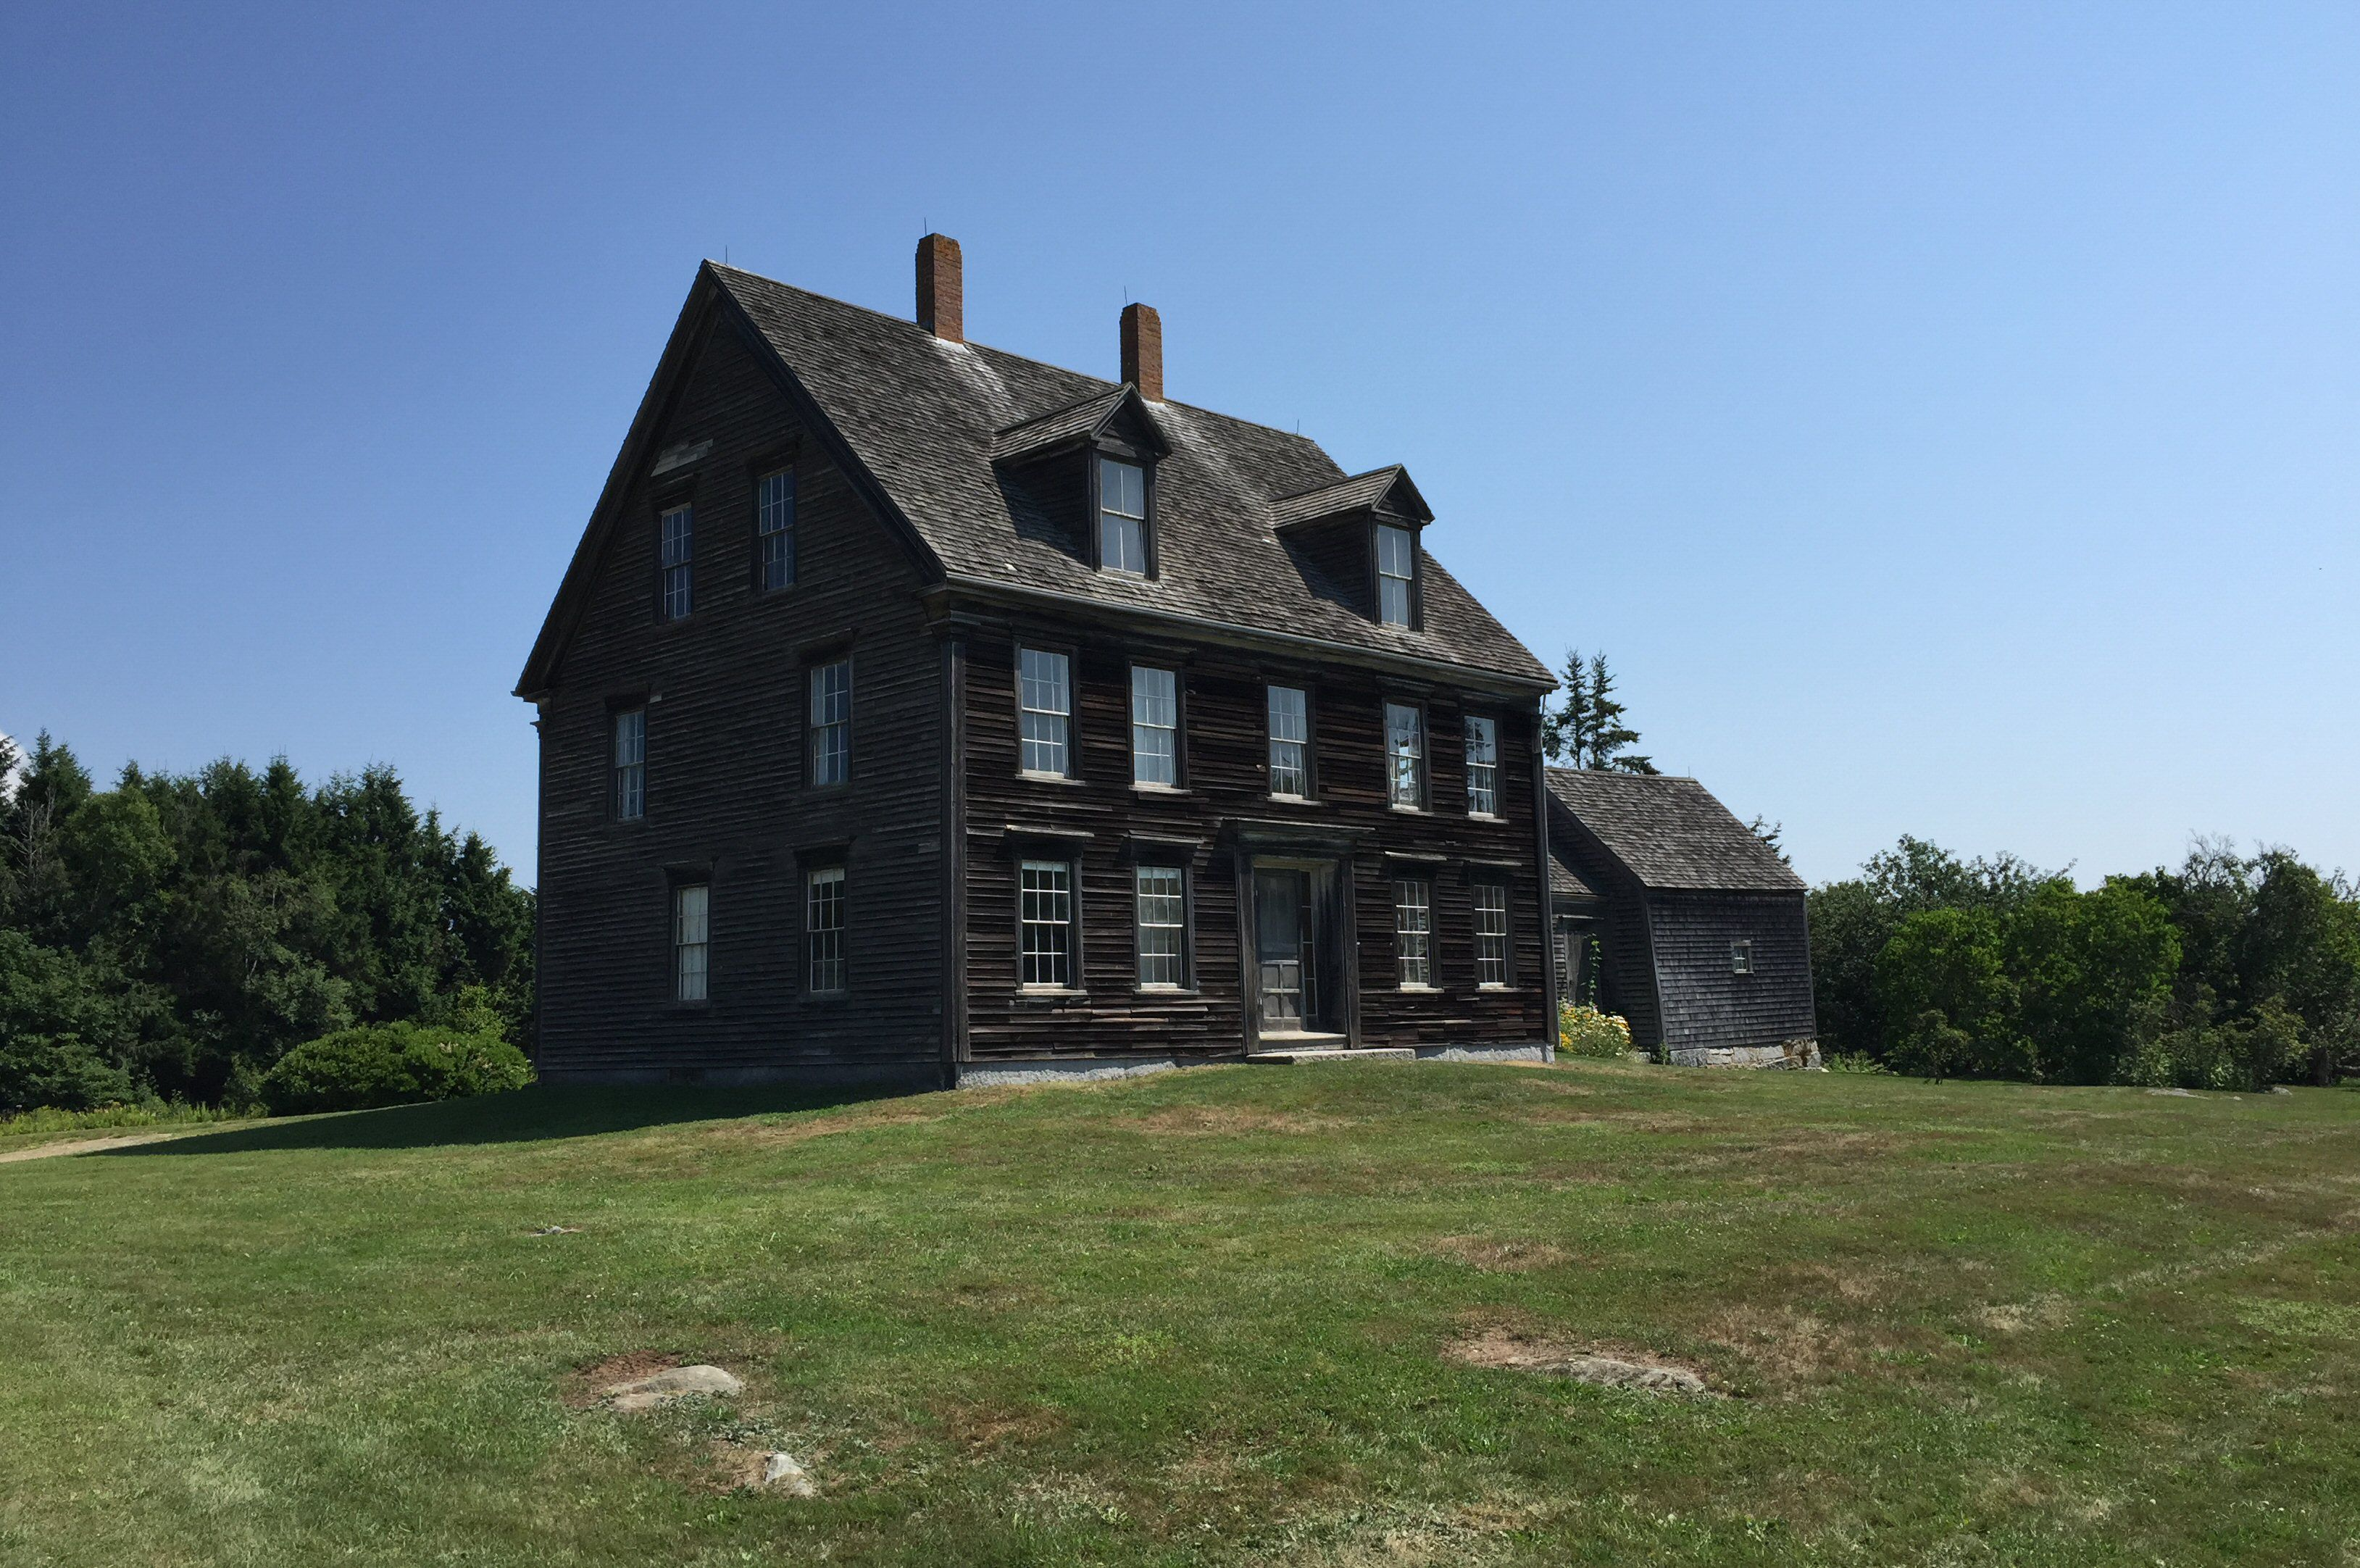 The Olson House in South Cushing, Maine